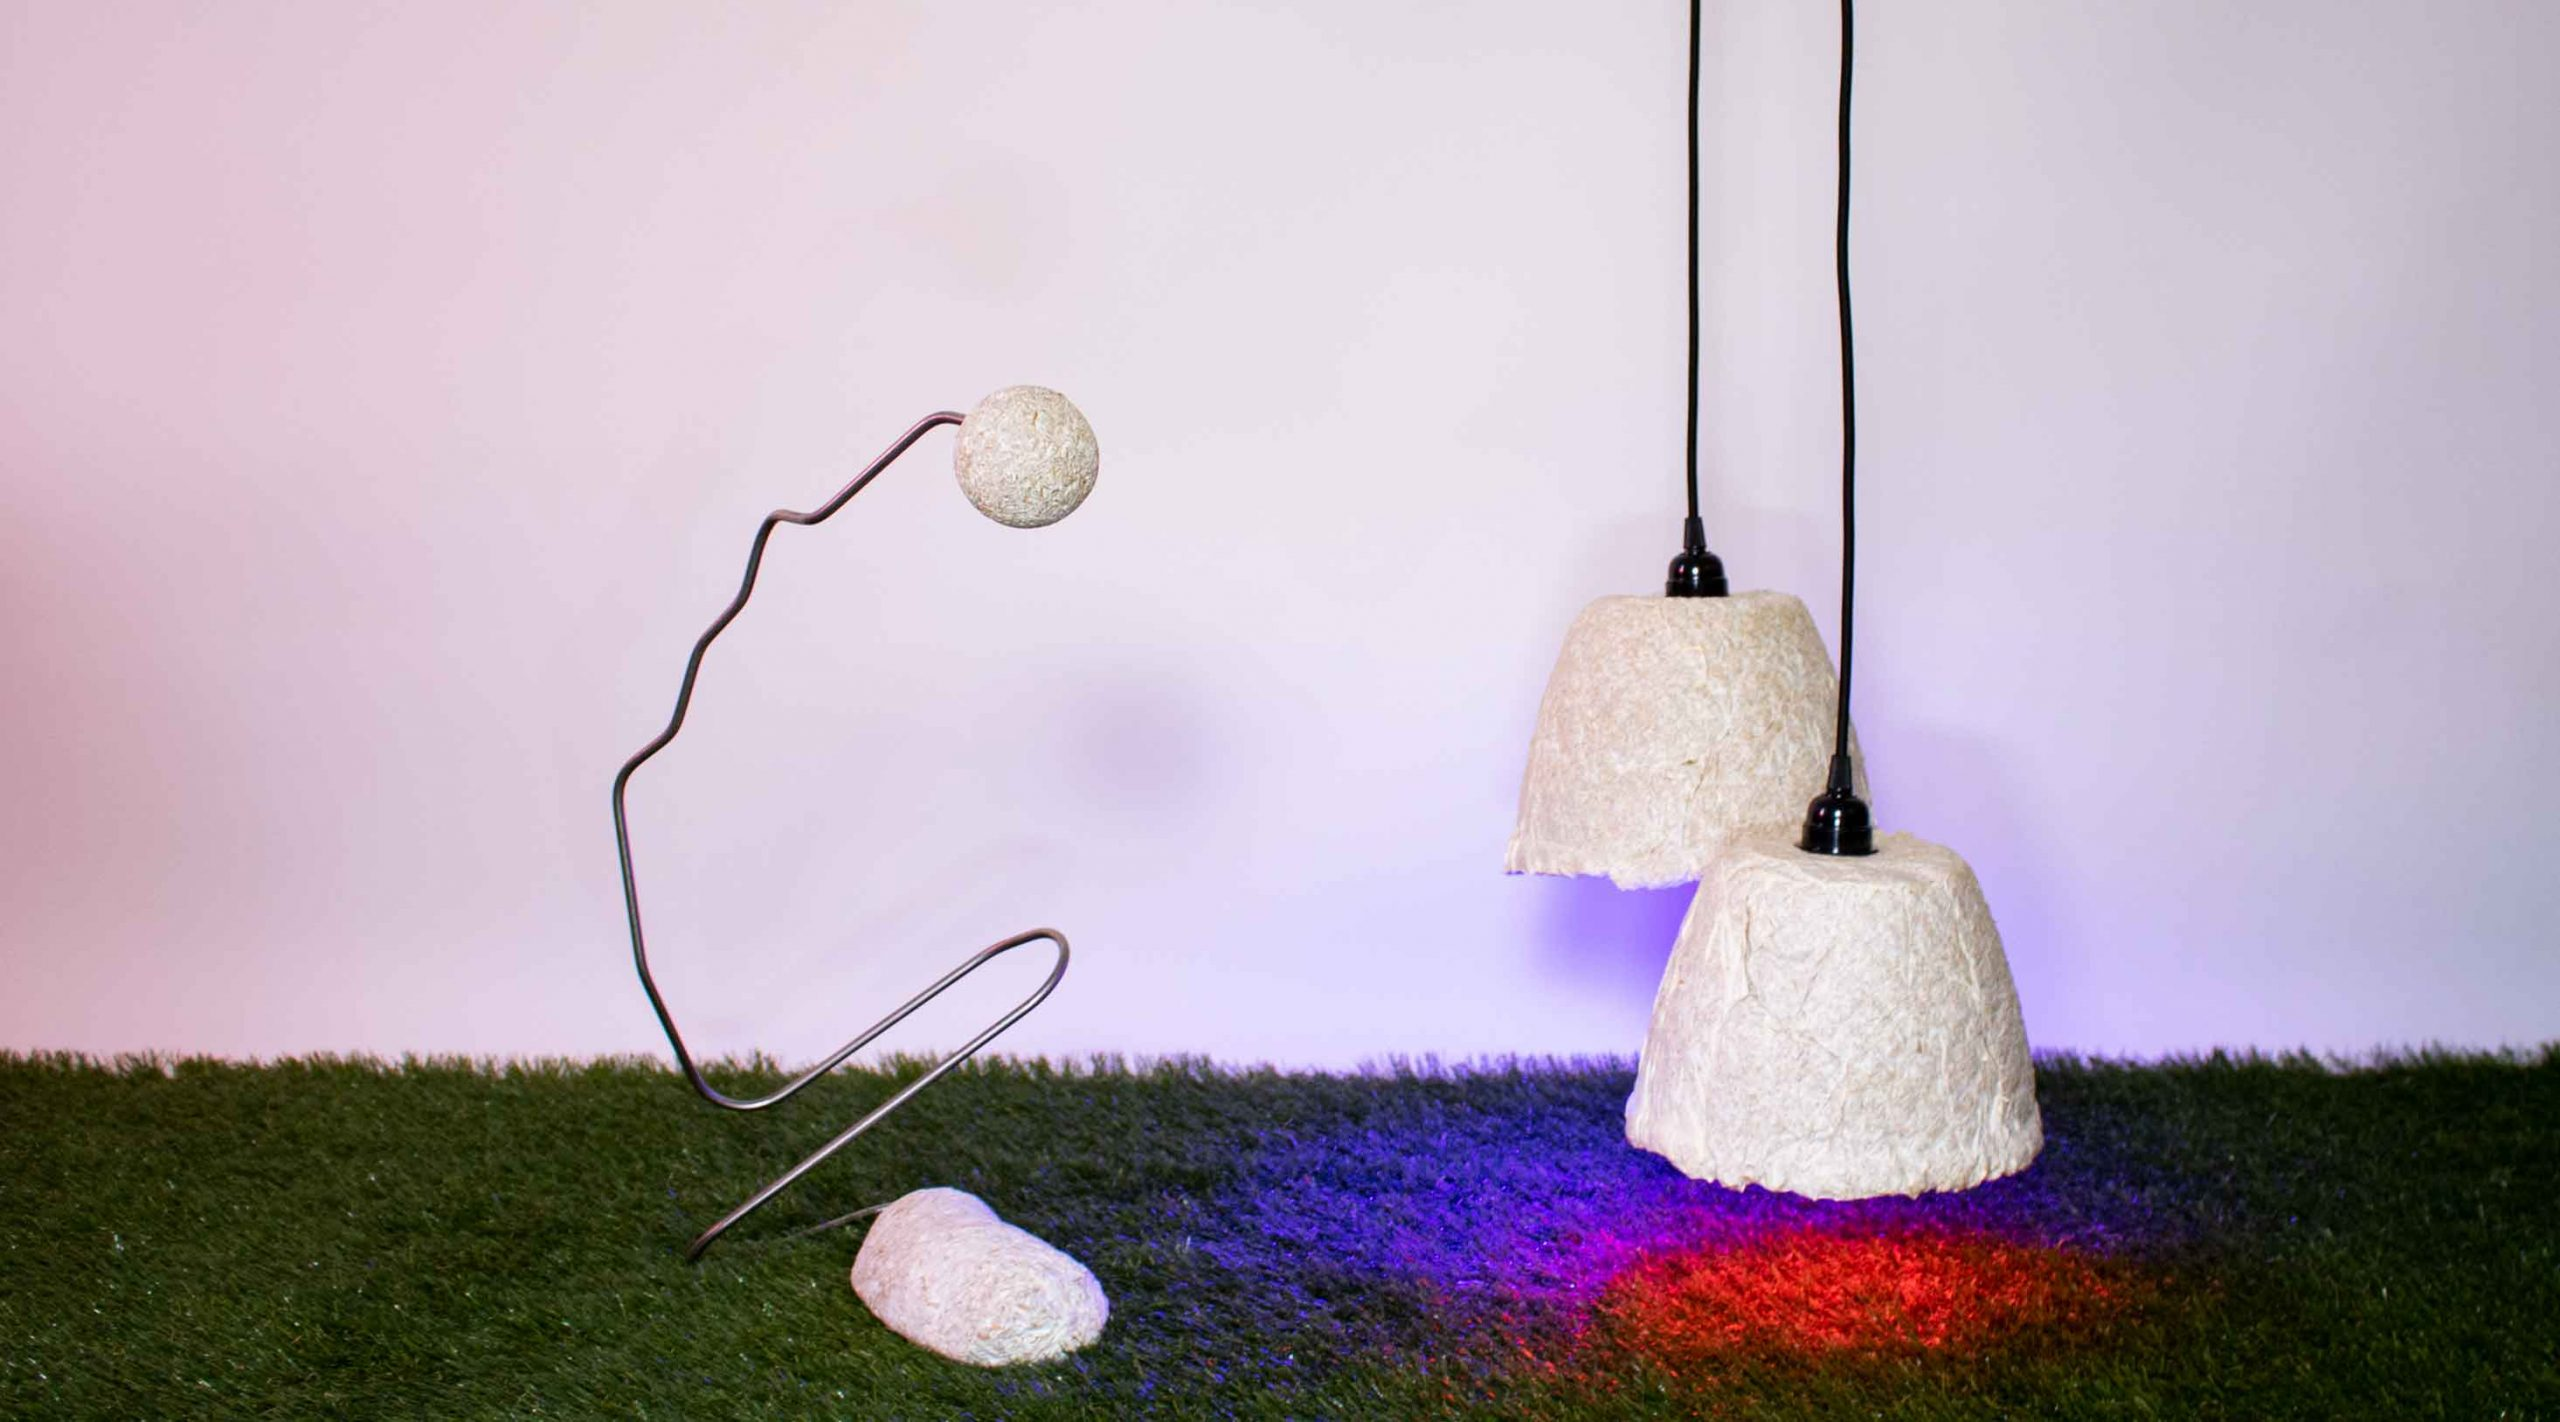 Several textured, organic sculptural objects sitting on faux grass in front of white wall. On the left, two white organic shapes balance on the bottom and top of a curved black wire. On the right, two white or cream organic lamp shades hang from black wires.